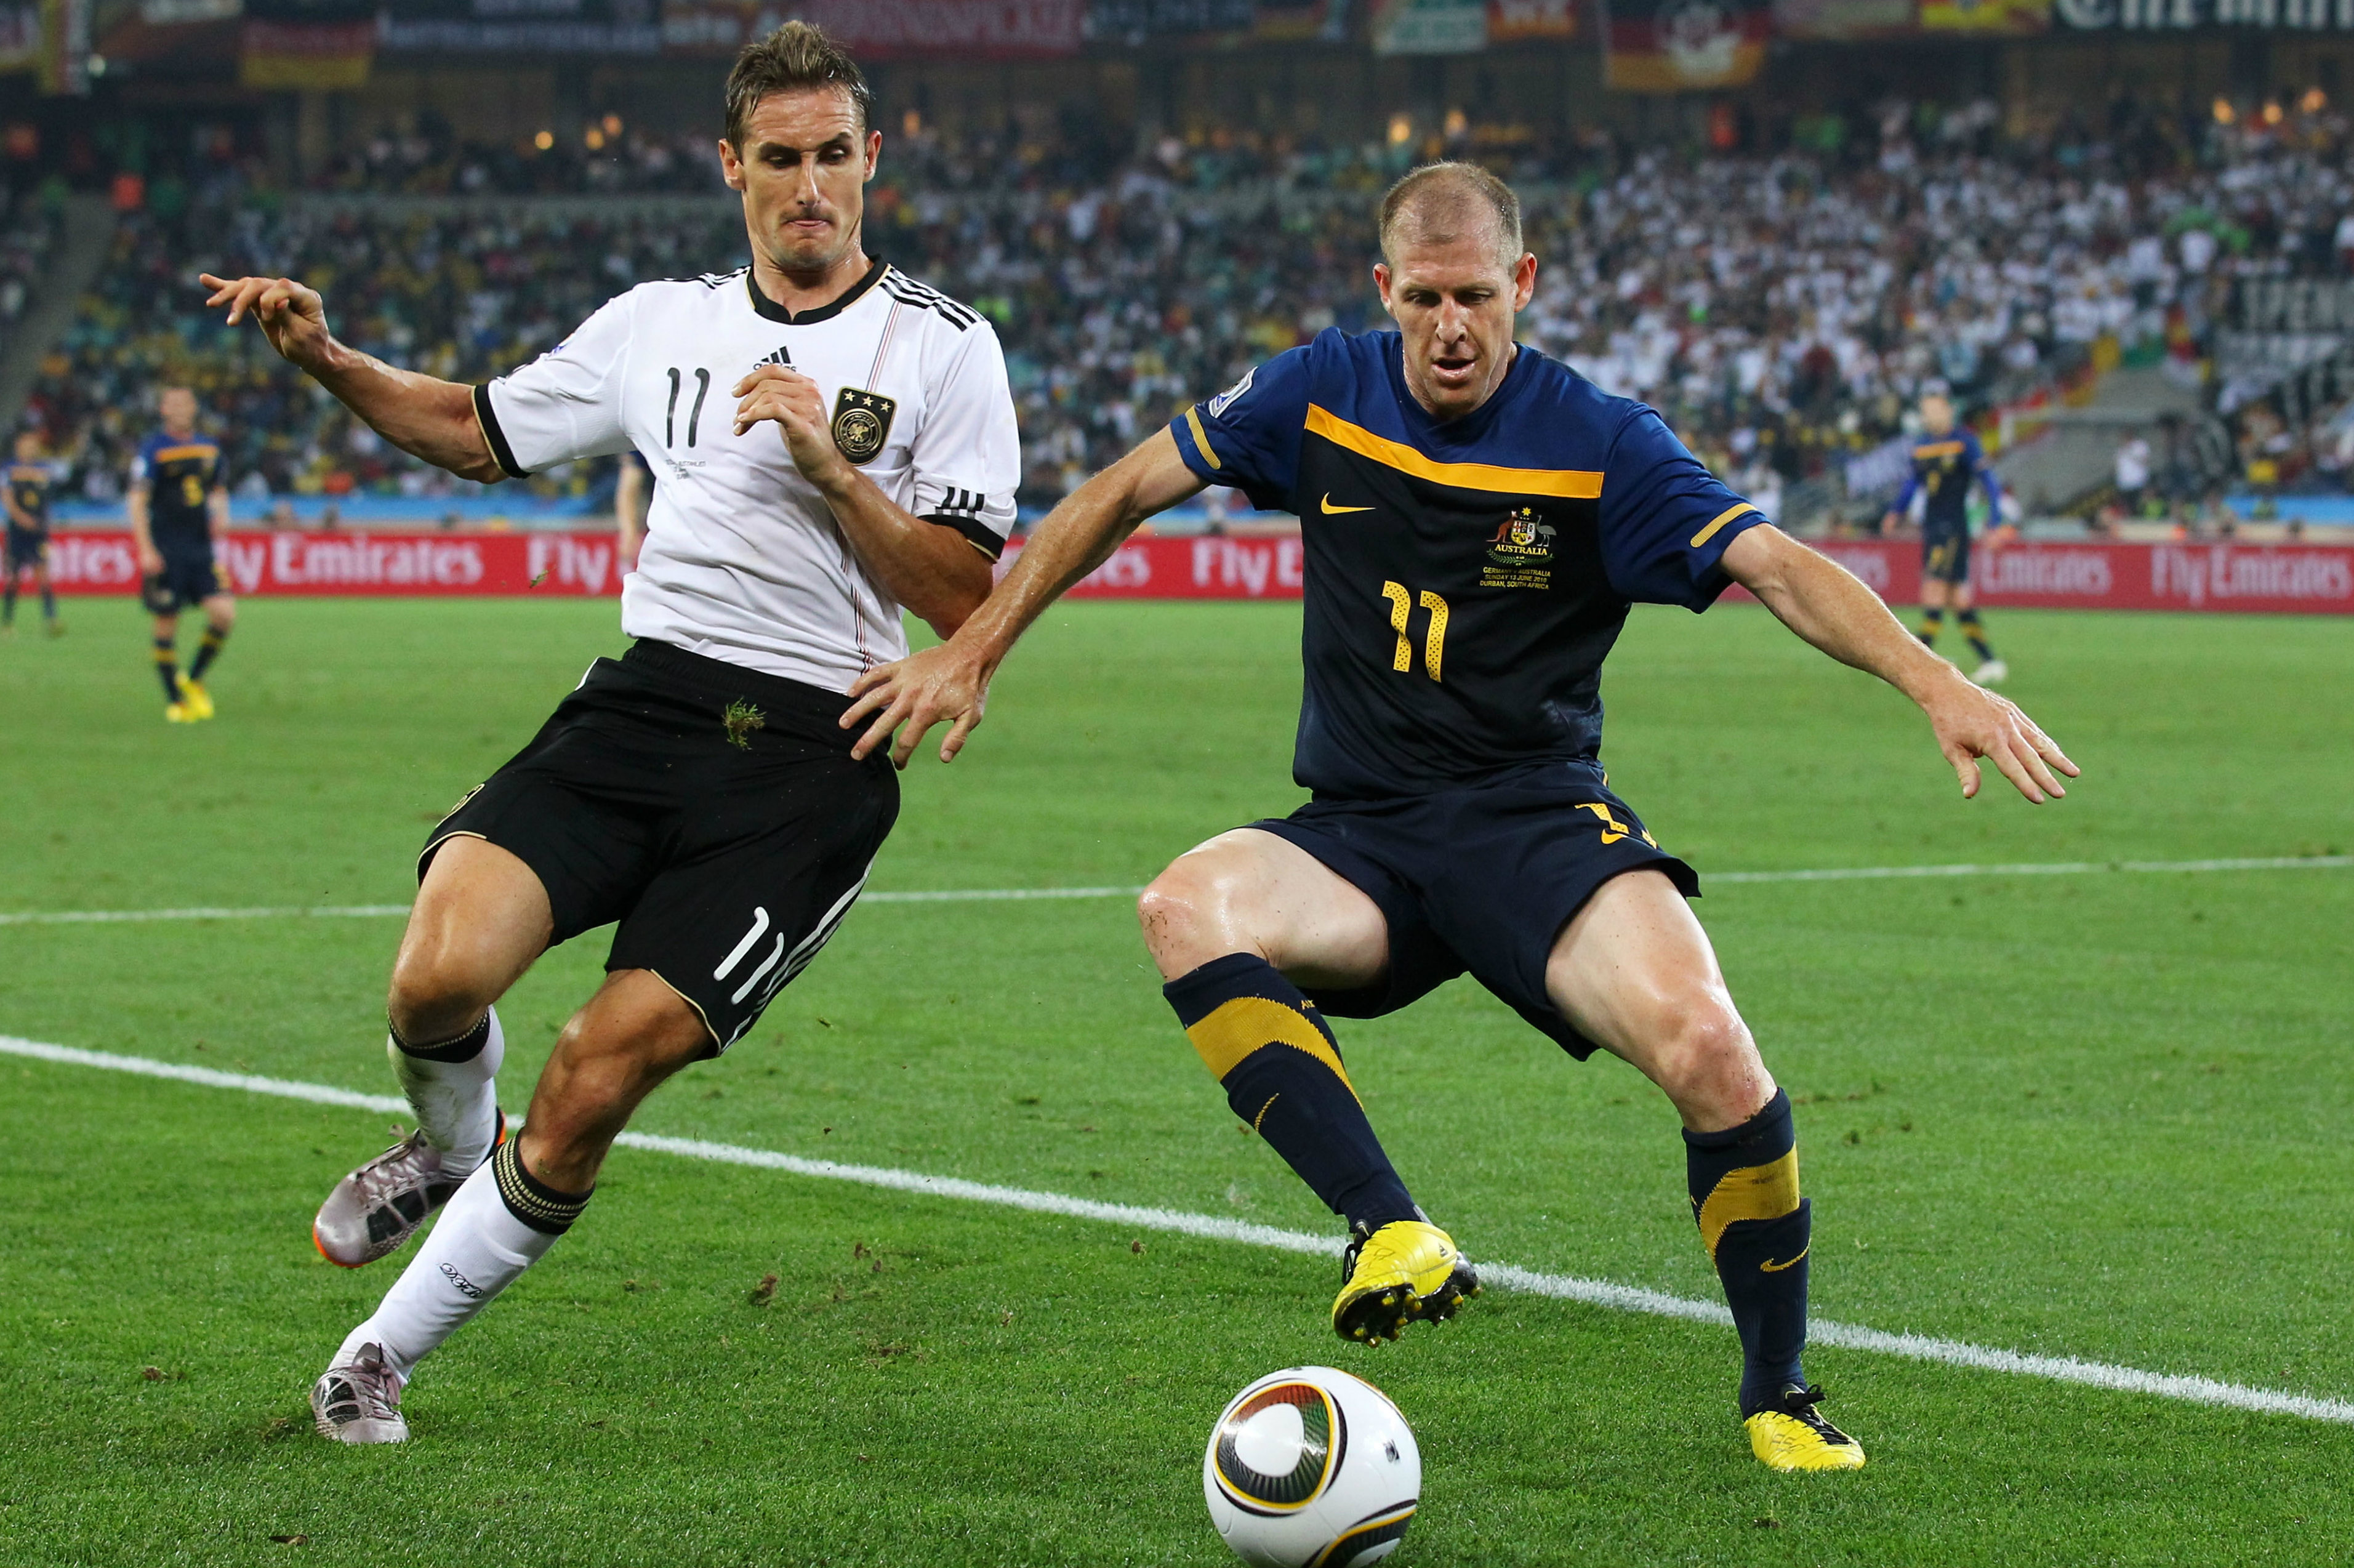 Caltex Socceroos legend Chipperfield to retire where it all began